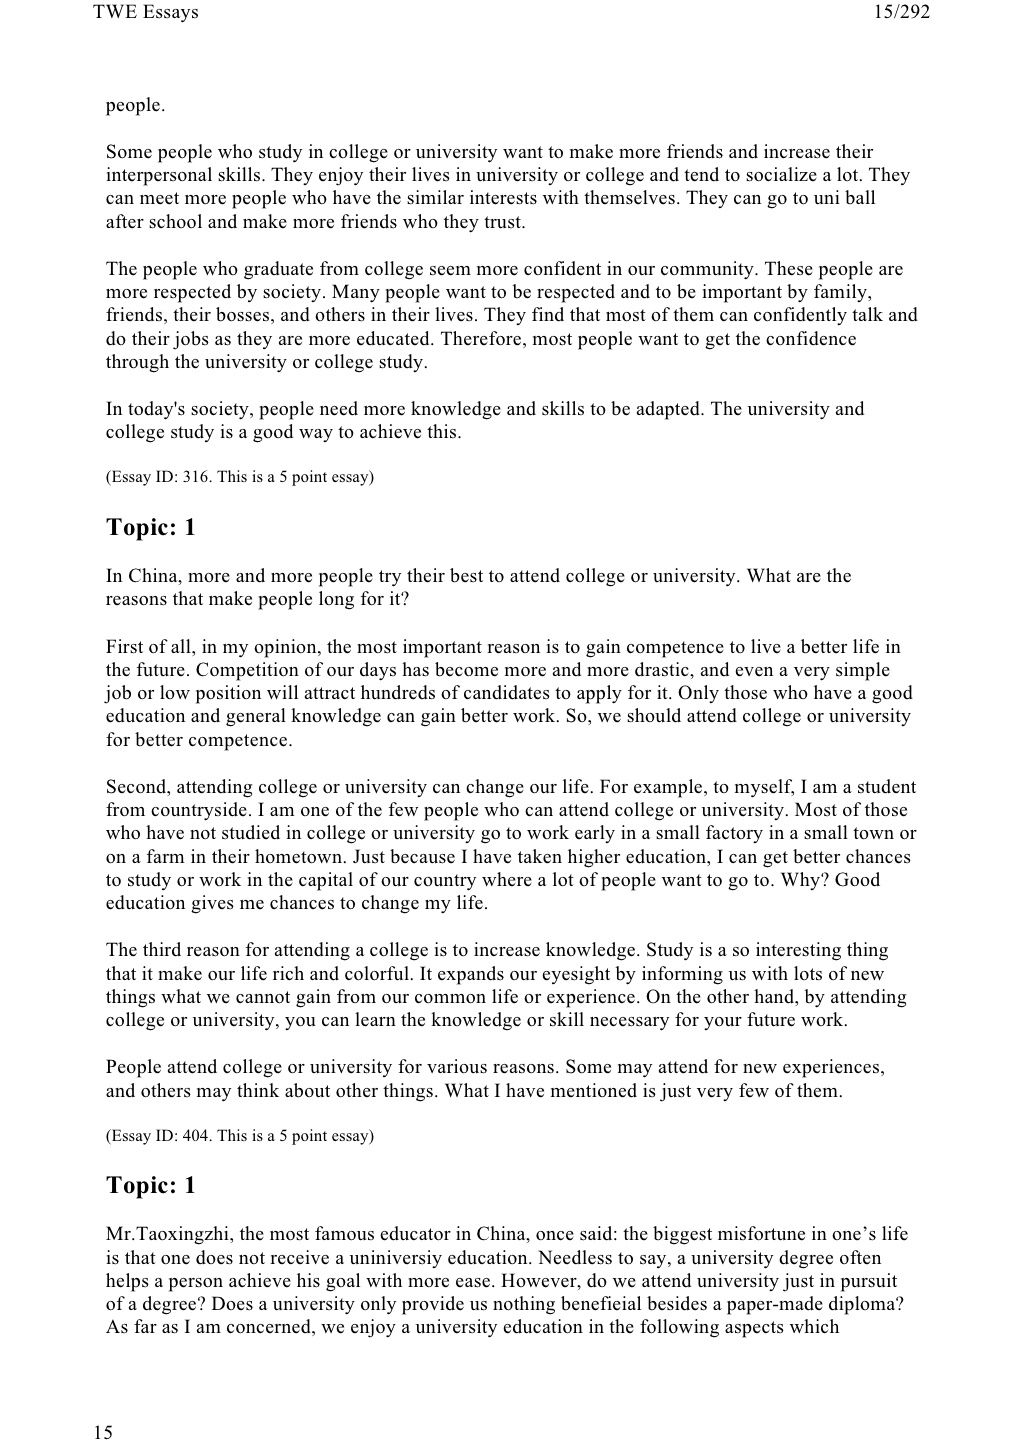 008 Topics In Essay Writing Example Unbelievable Interesting For Competition Hindi Ielts With Answers Pdf Full